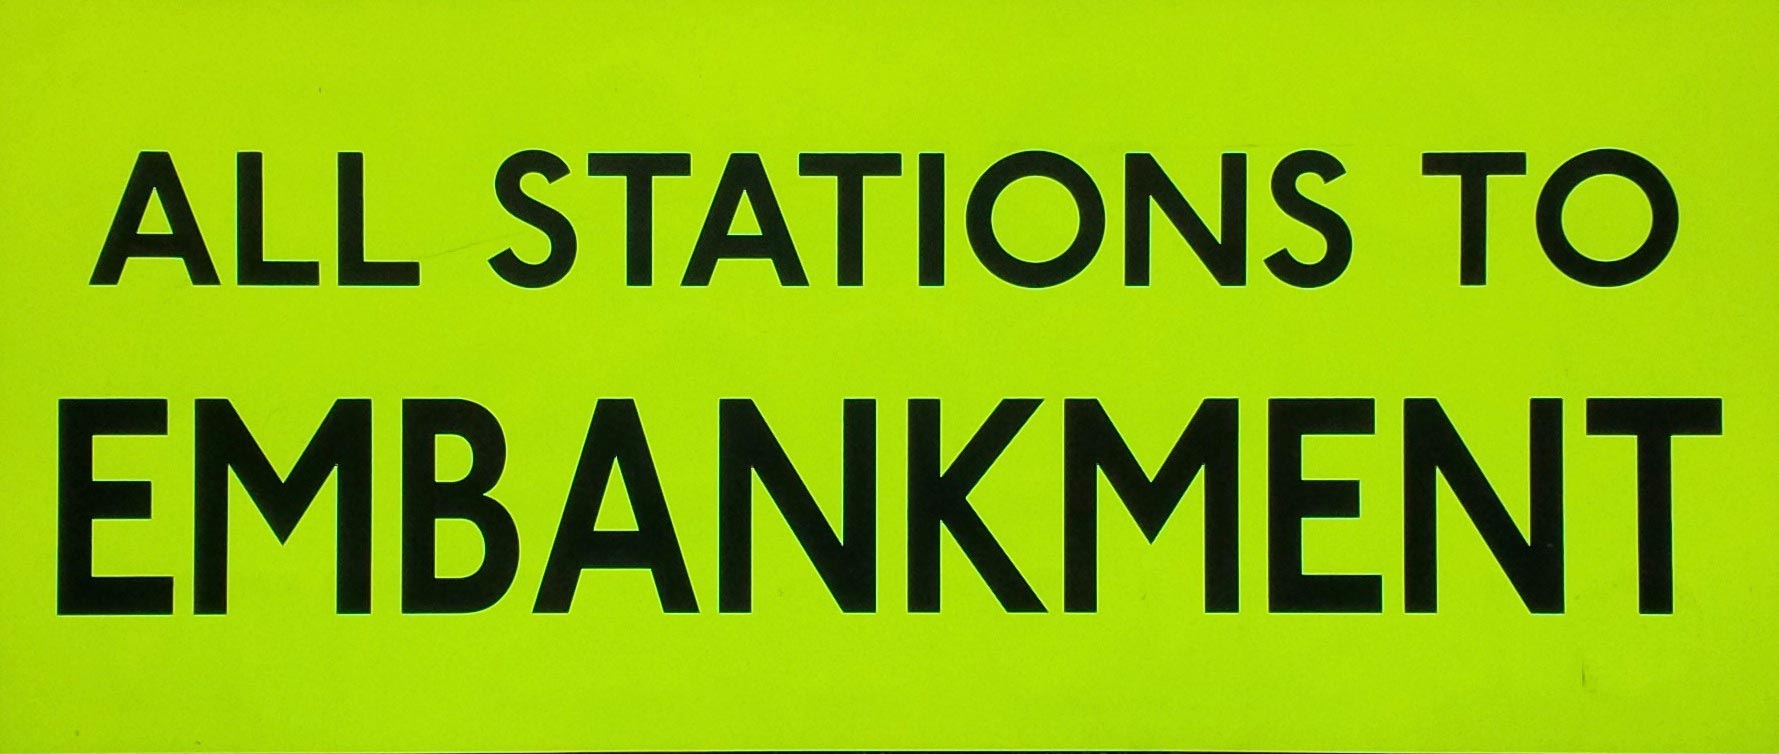 All Stations To Embankment